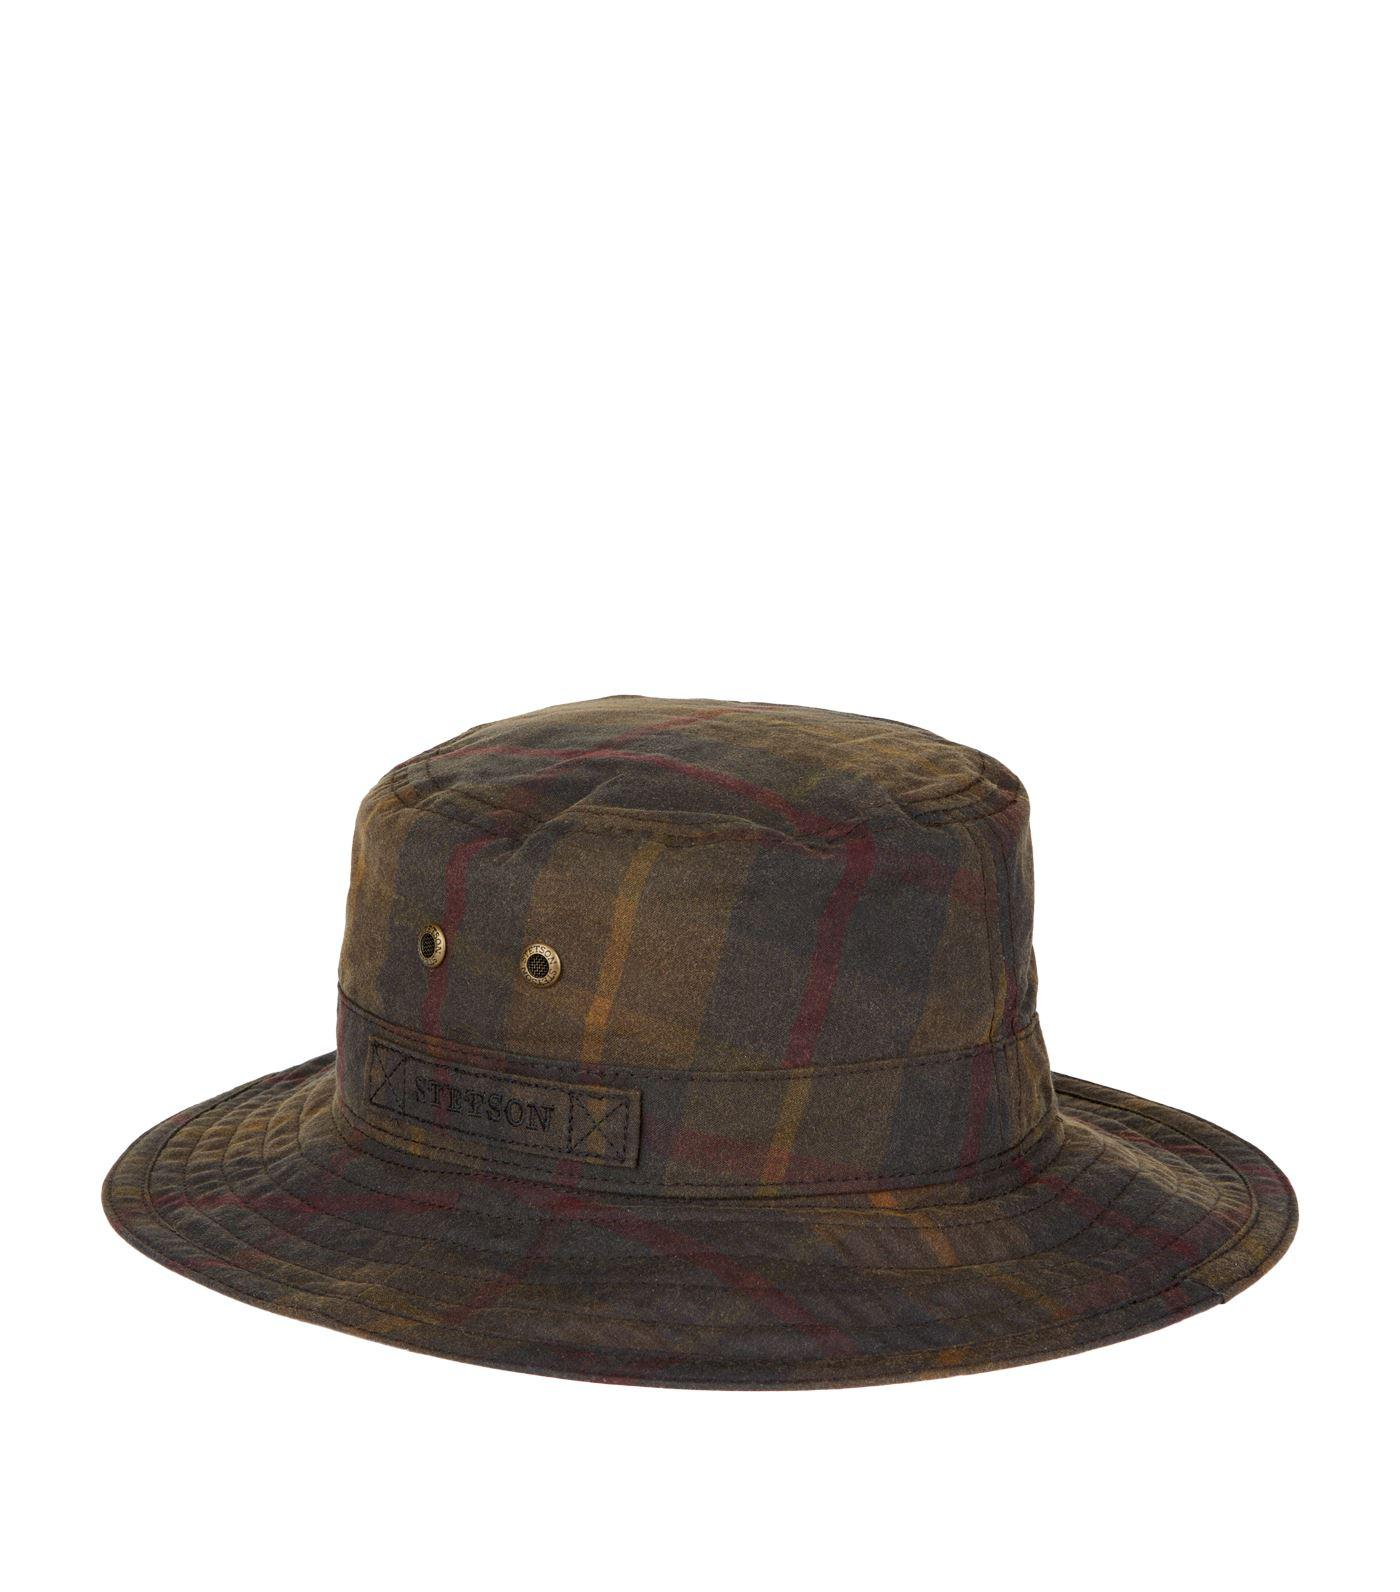 d365e19b5750bc Stetson Atkins Waxed Cotton Bucket Hat in Green for Men - Lyst